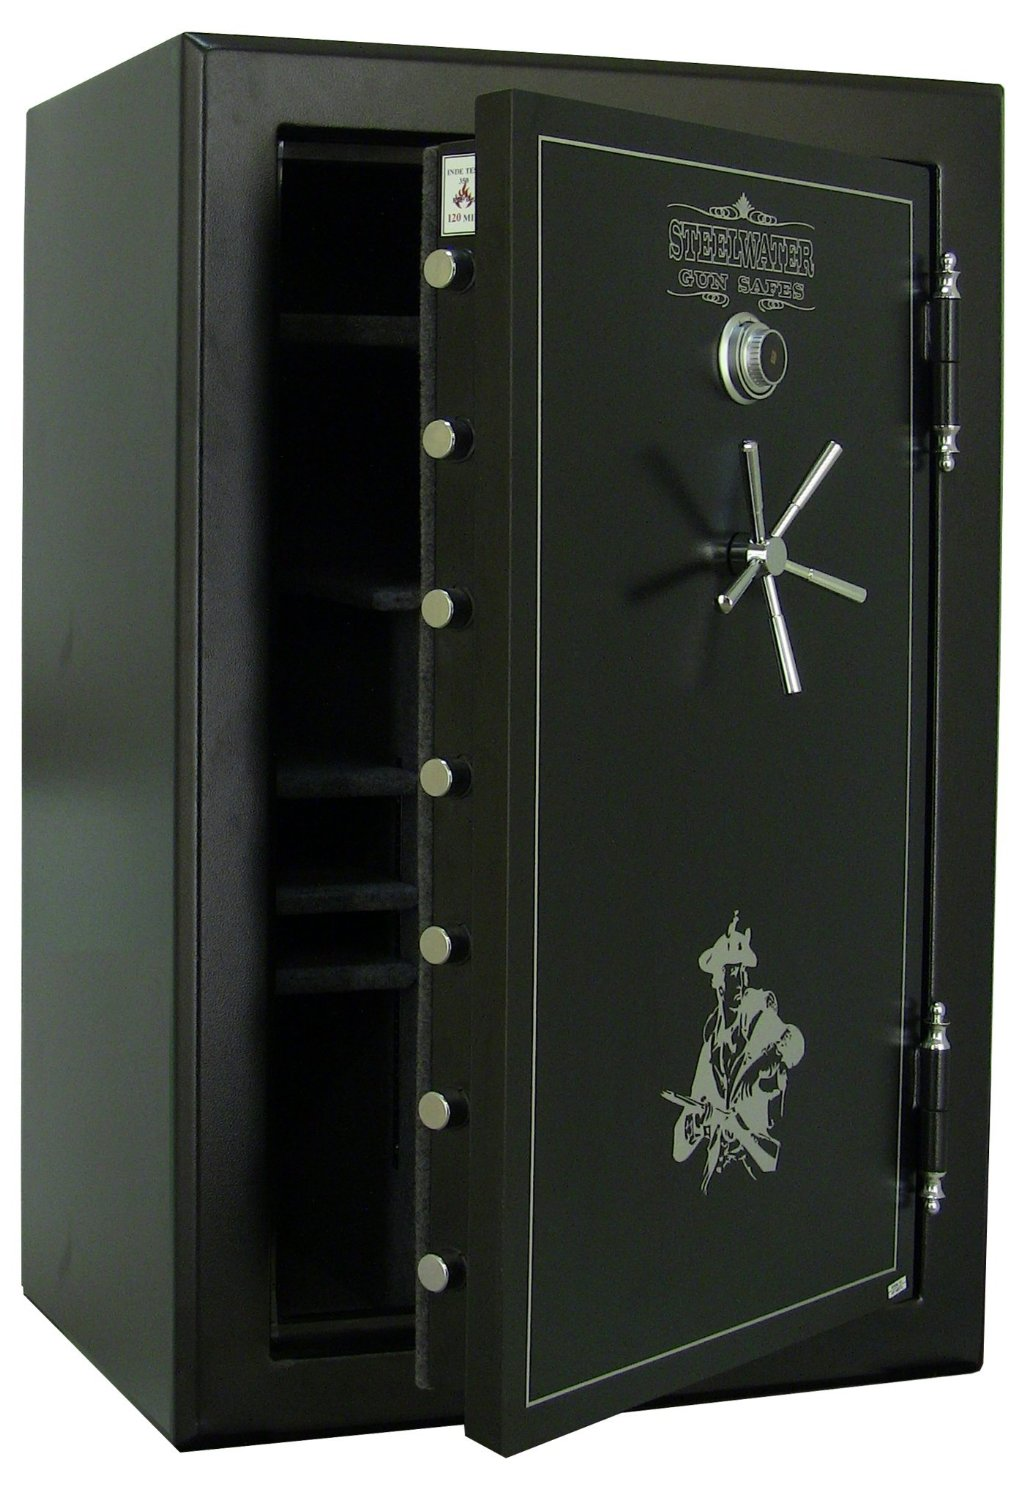 Steelwater Extreme Duty 39 Long Gun Fire Protection for 120 Minutes AMHD593924-blk. one of the best gun safe in garage models